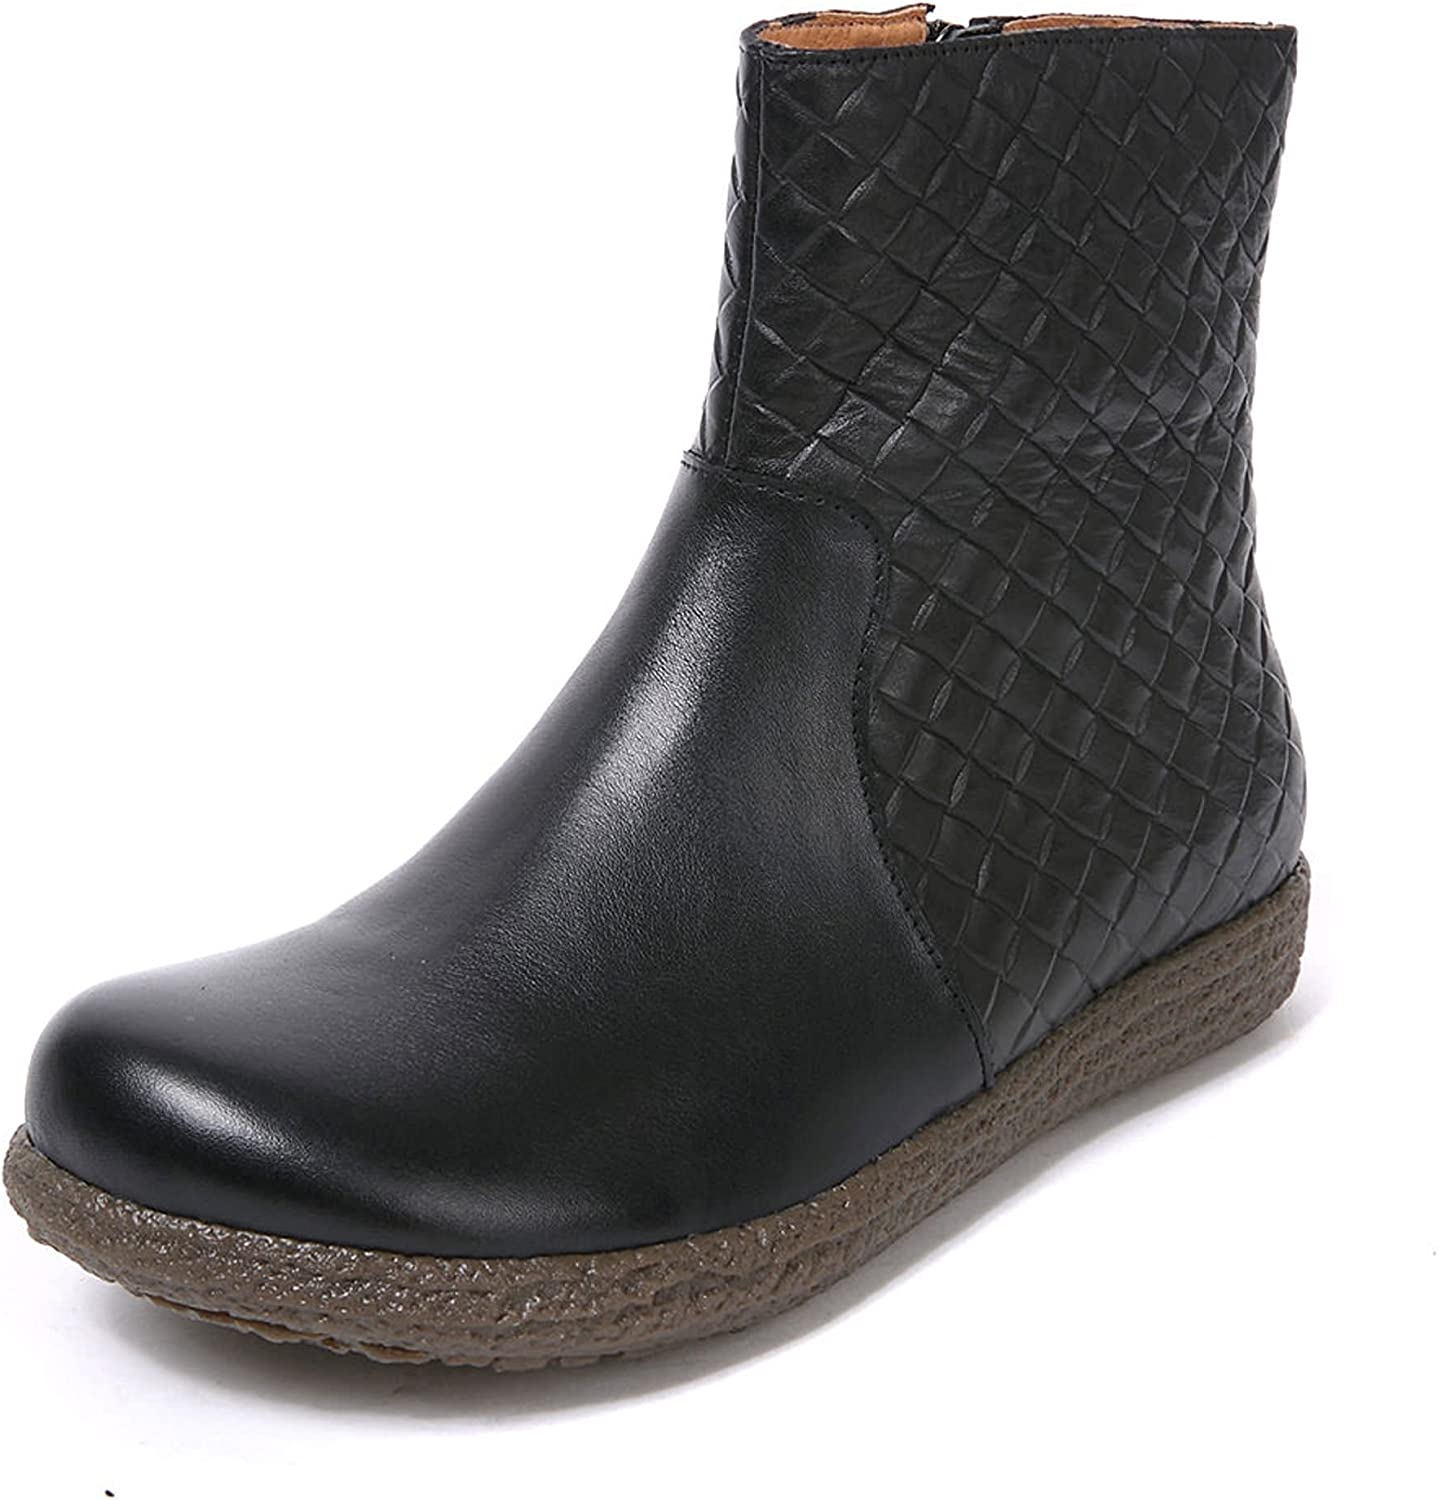 Barenx Women's Round Toe Rubber Outsole Pig Skin Lining Weave Pattern Cow Leather Ankle Boots